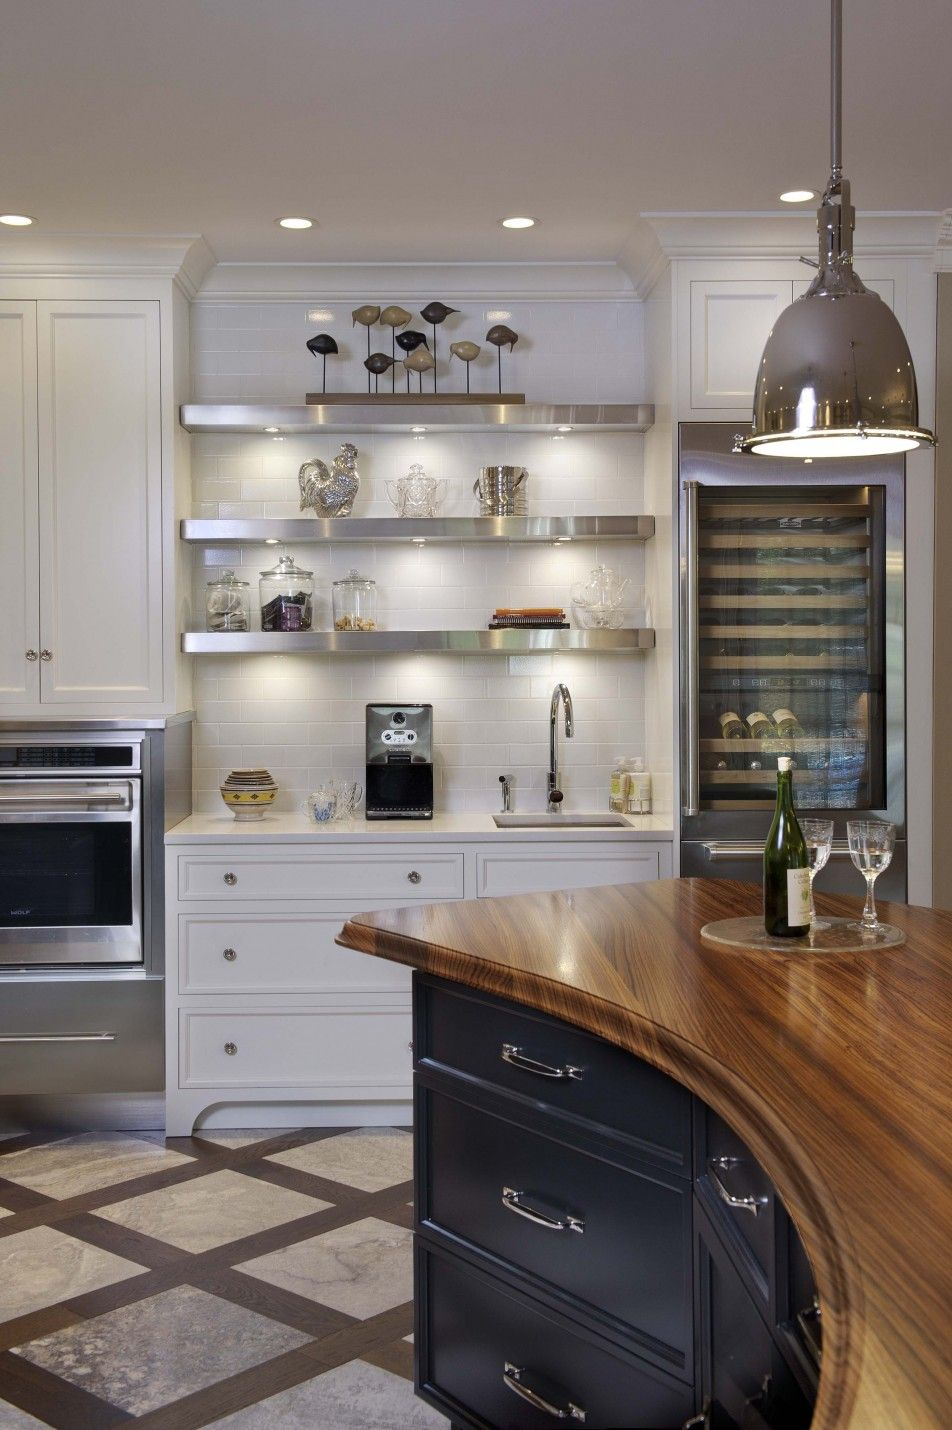 Kitchen Remarkable Minimalist Kitchen Inspiration Also With High Gloss Finish Laminate Countertops Along With Self Cleaning Convection O Kitchen Wood Countertops Modern Kitchen Furniture Bathroom Countertops